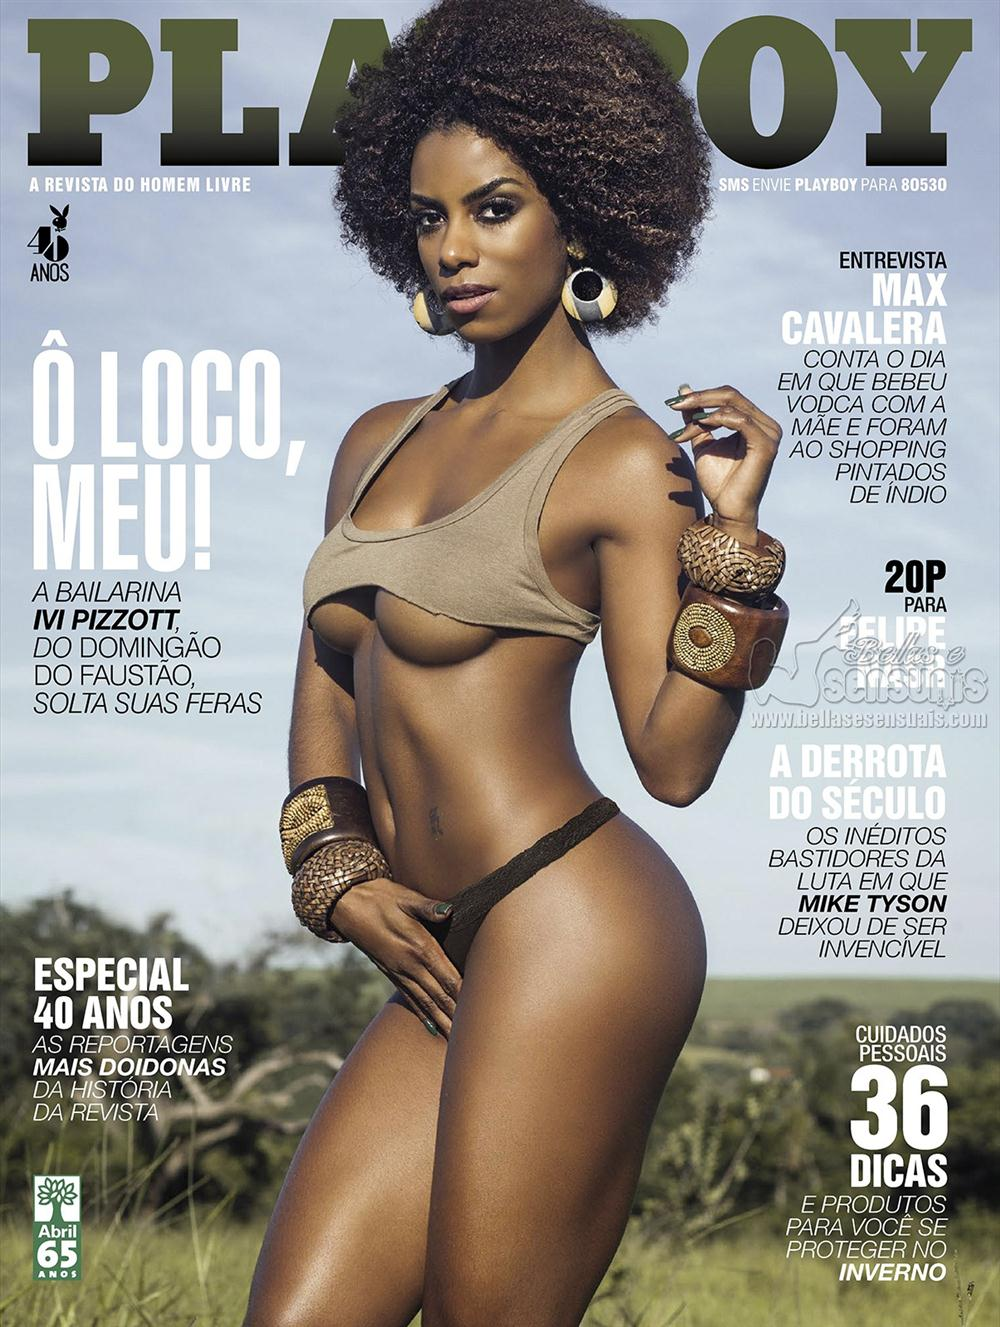 Ivi Pizzott - Playboy (1)